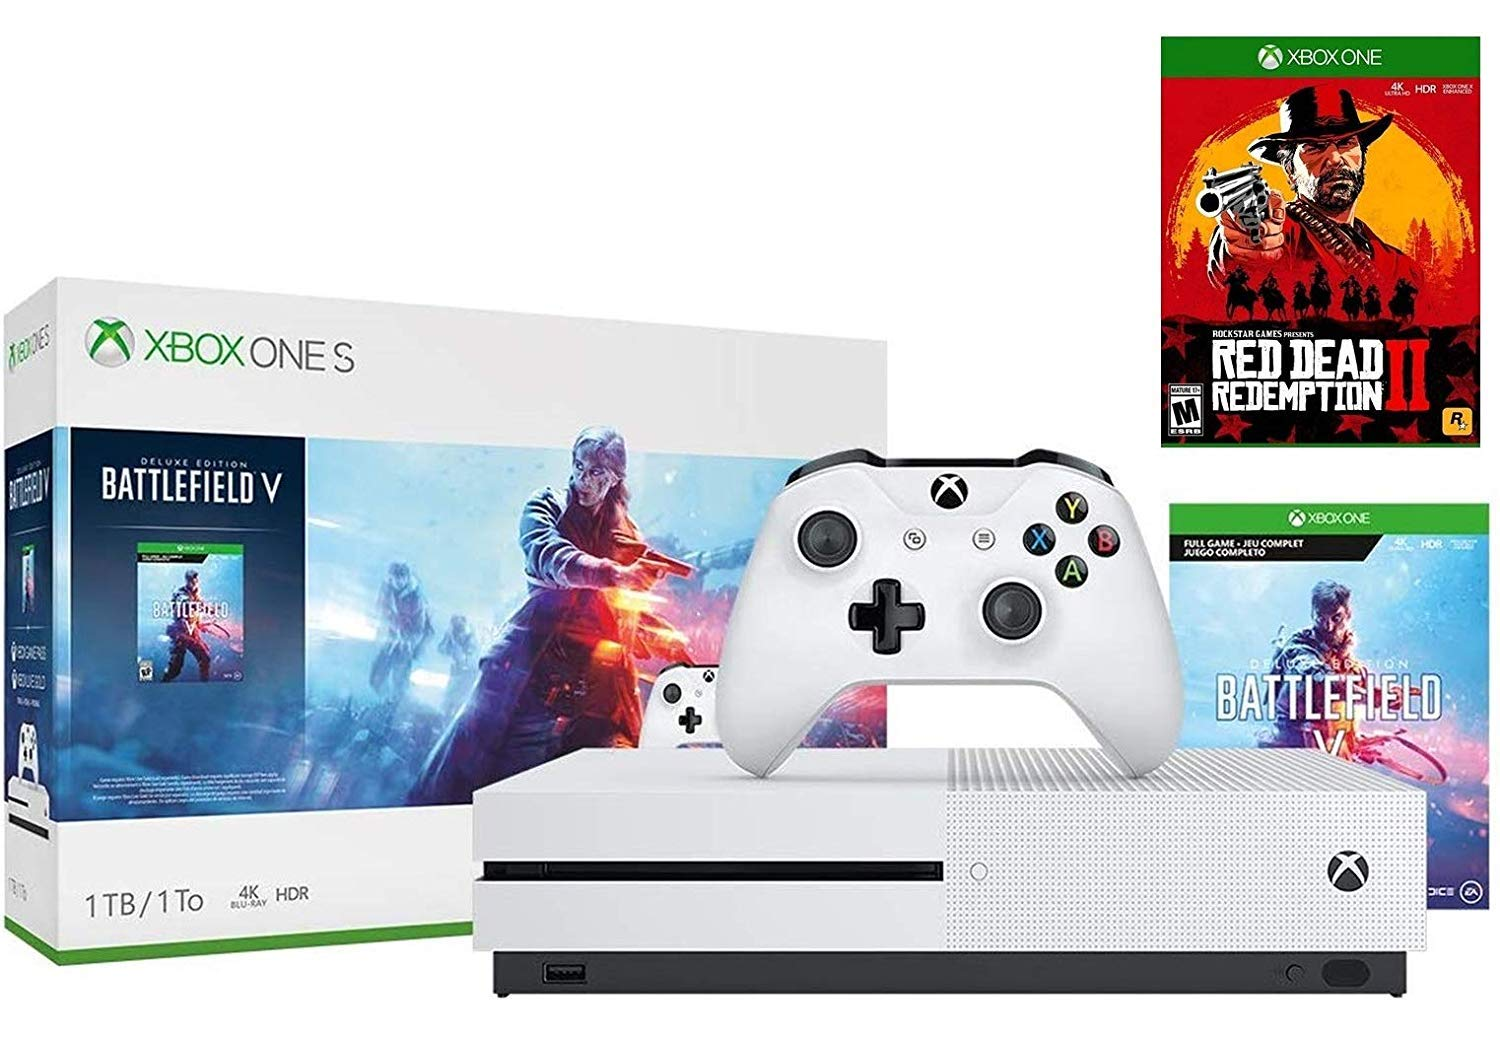 Xbox One S 1TB Battlefield V Console Bundle With Red Dead Redemption 2: Red Dead Redemption 2, Xbox One S 1TB Console, Wireless Controller